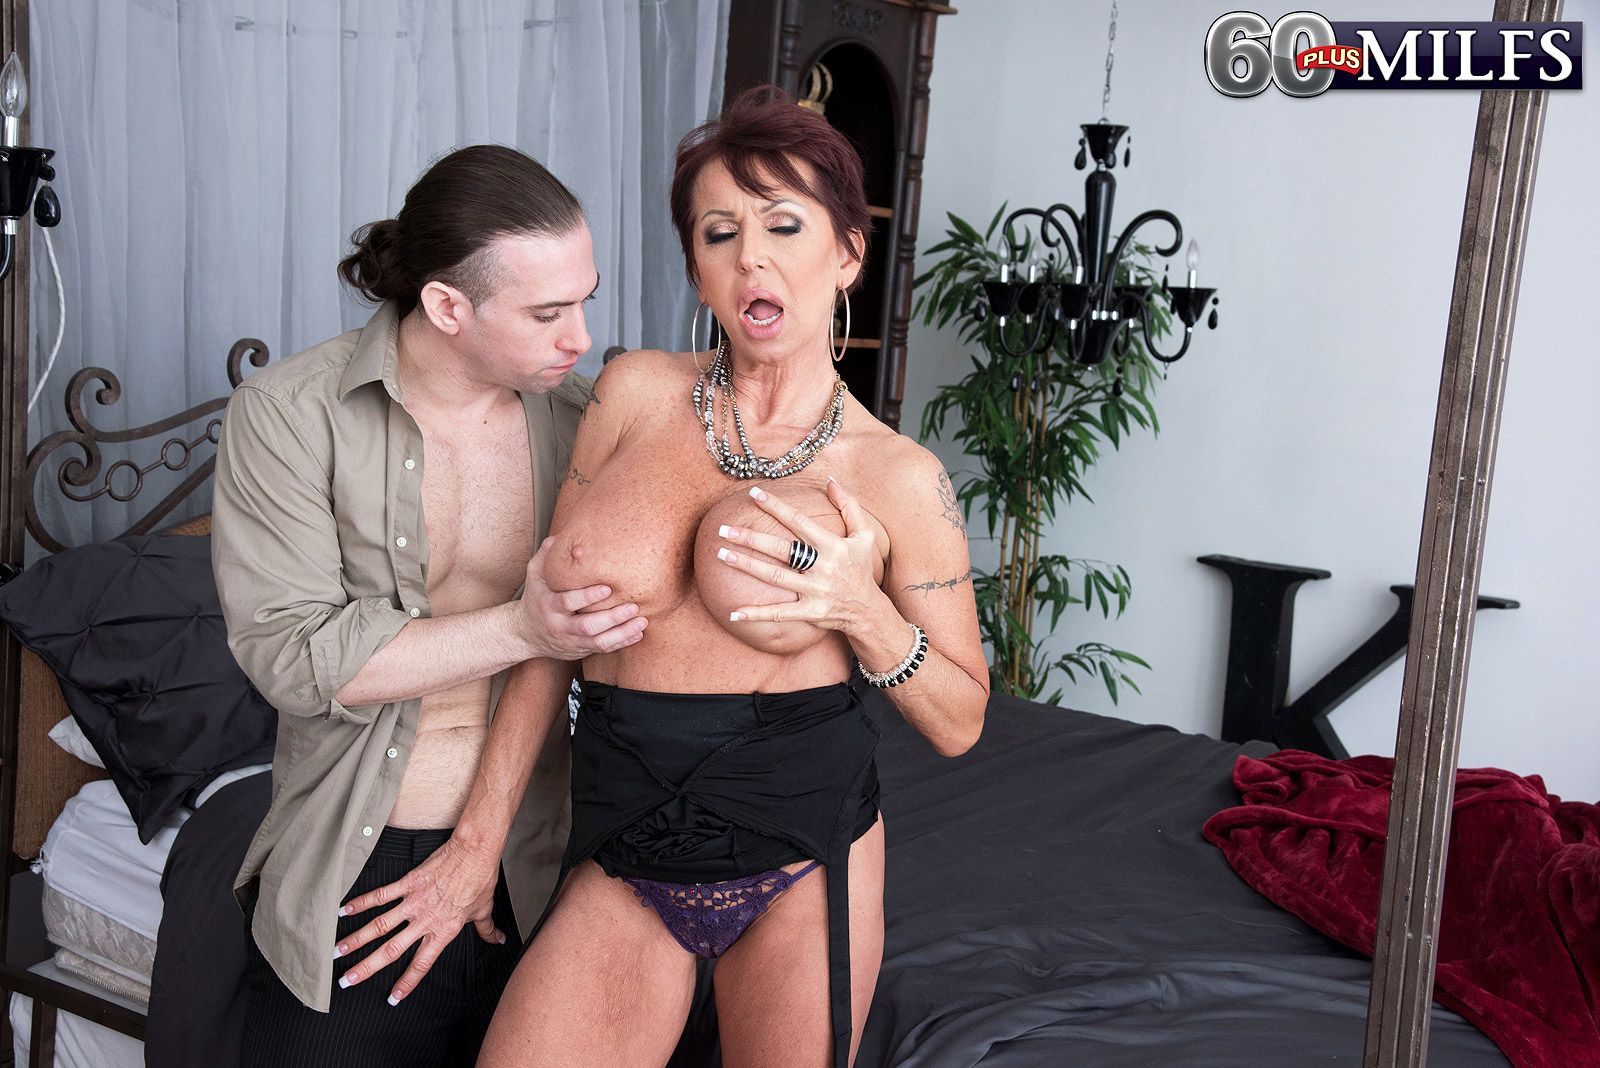 Hot 60 plus MILF Gina Milano seduces younger man with a naughty panty flash